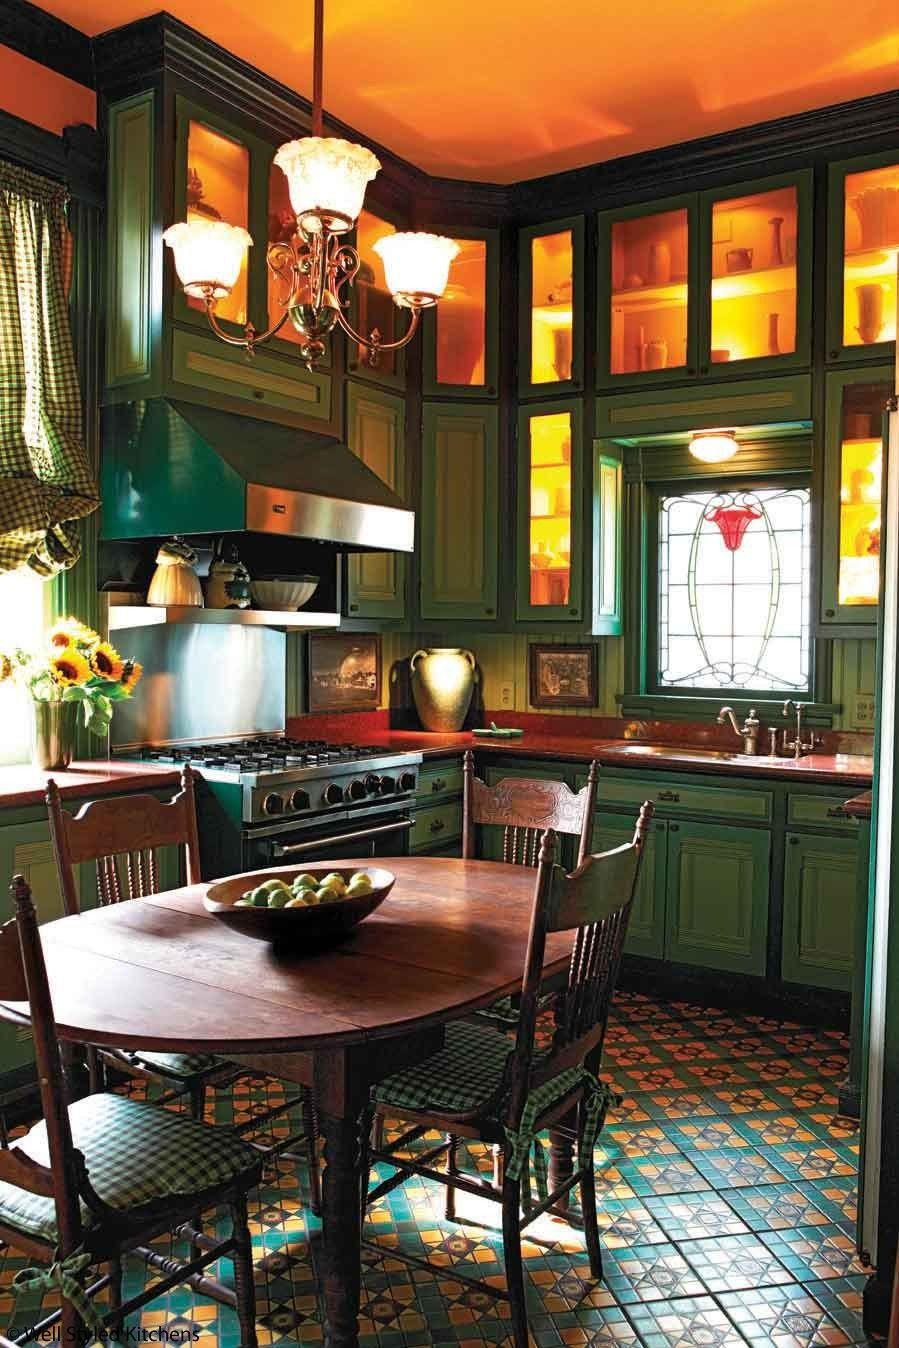 Victorian kitchen. I would paint a brighter color for the cabinets than that dark green | Kitchen interior, Victorian kitchen, Classy kitchen